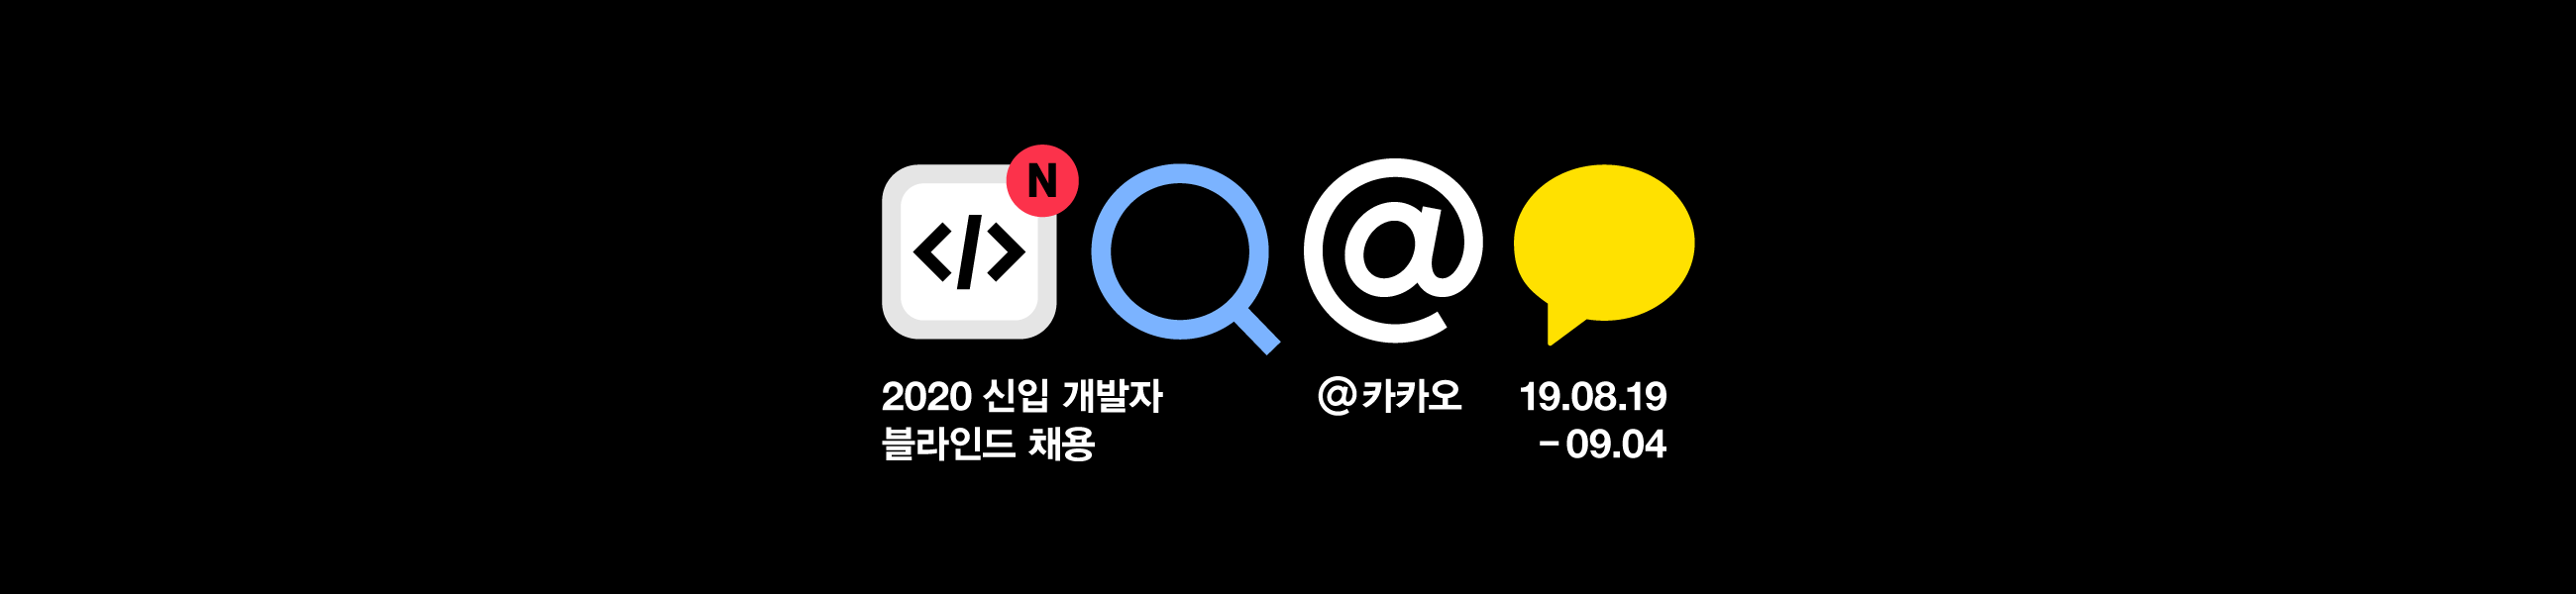 2020 KAKAO BLIND RECRUITMENT의 이미지